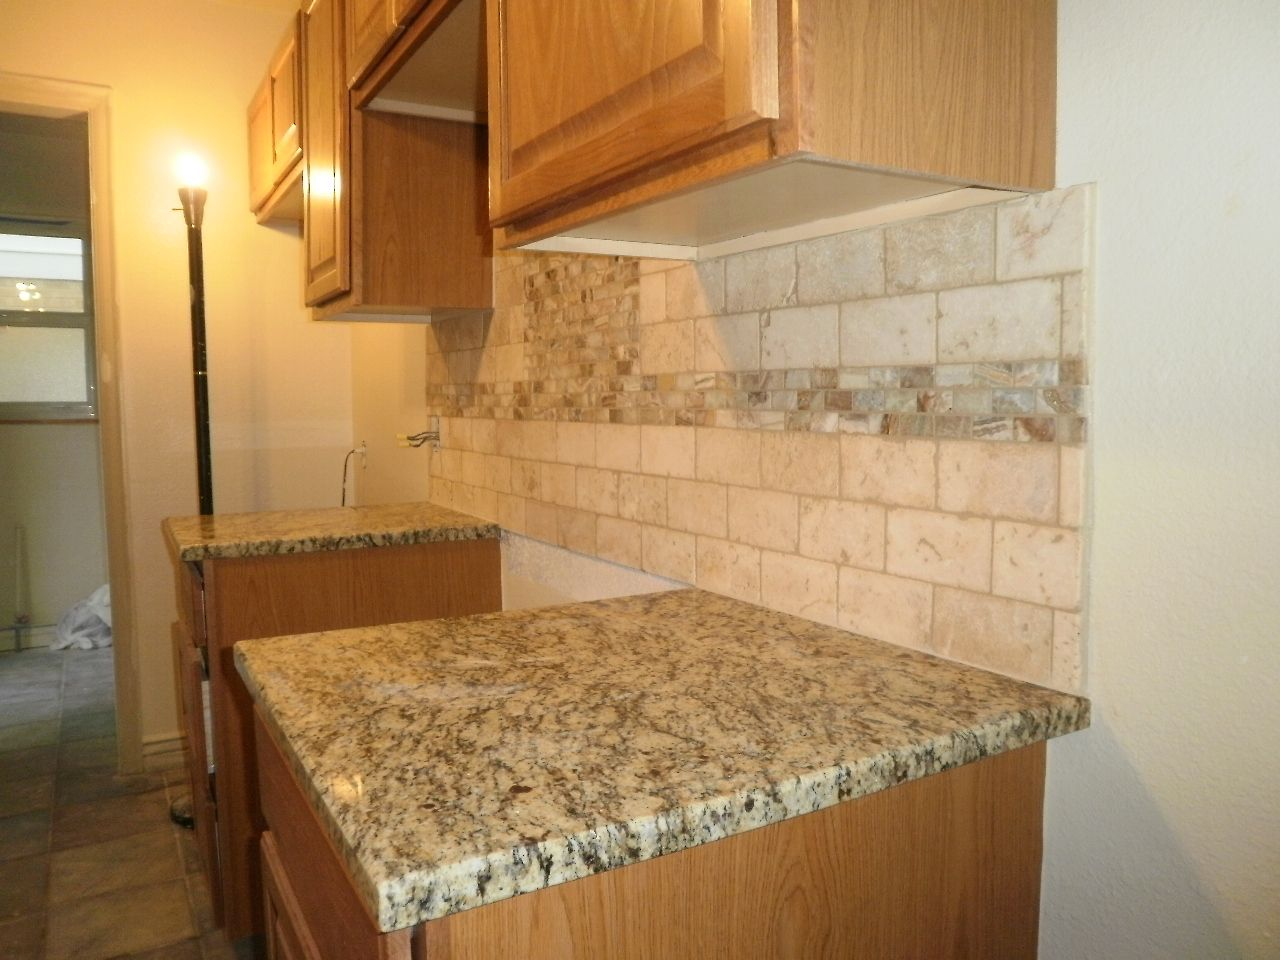 Travertine tile backsplash backsplash just for Travertine tile designs